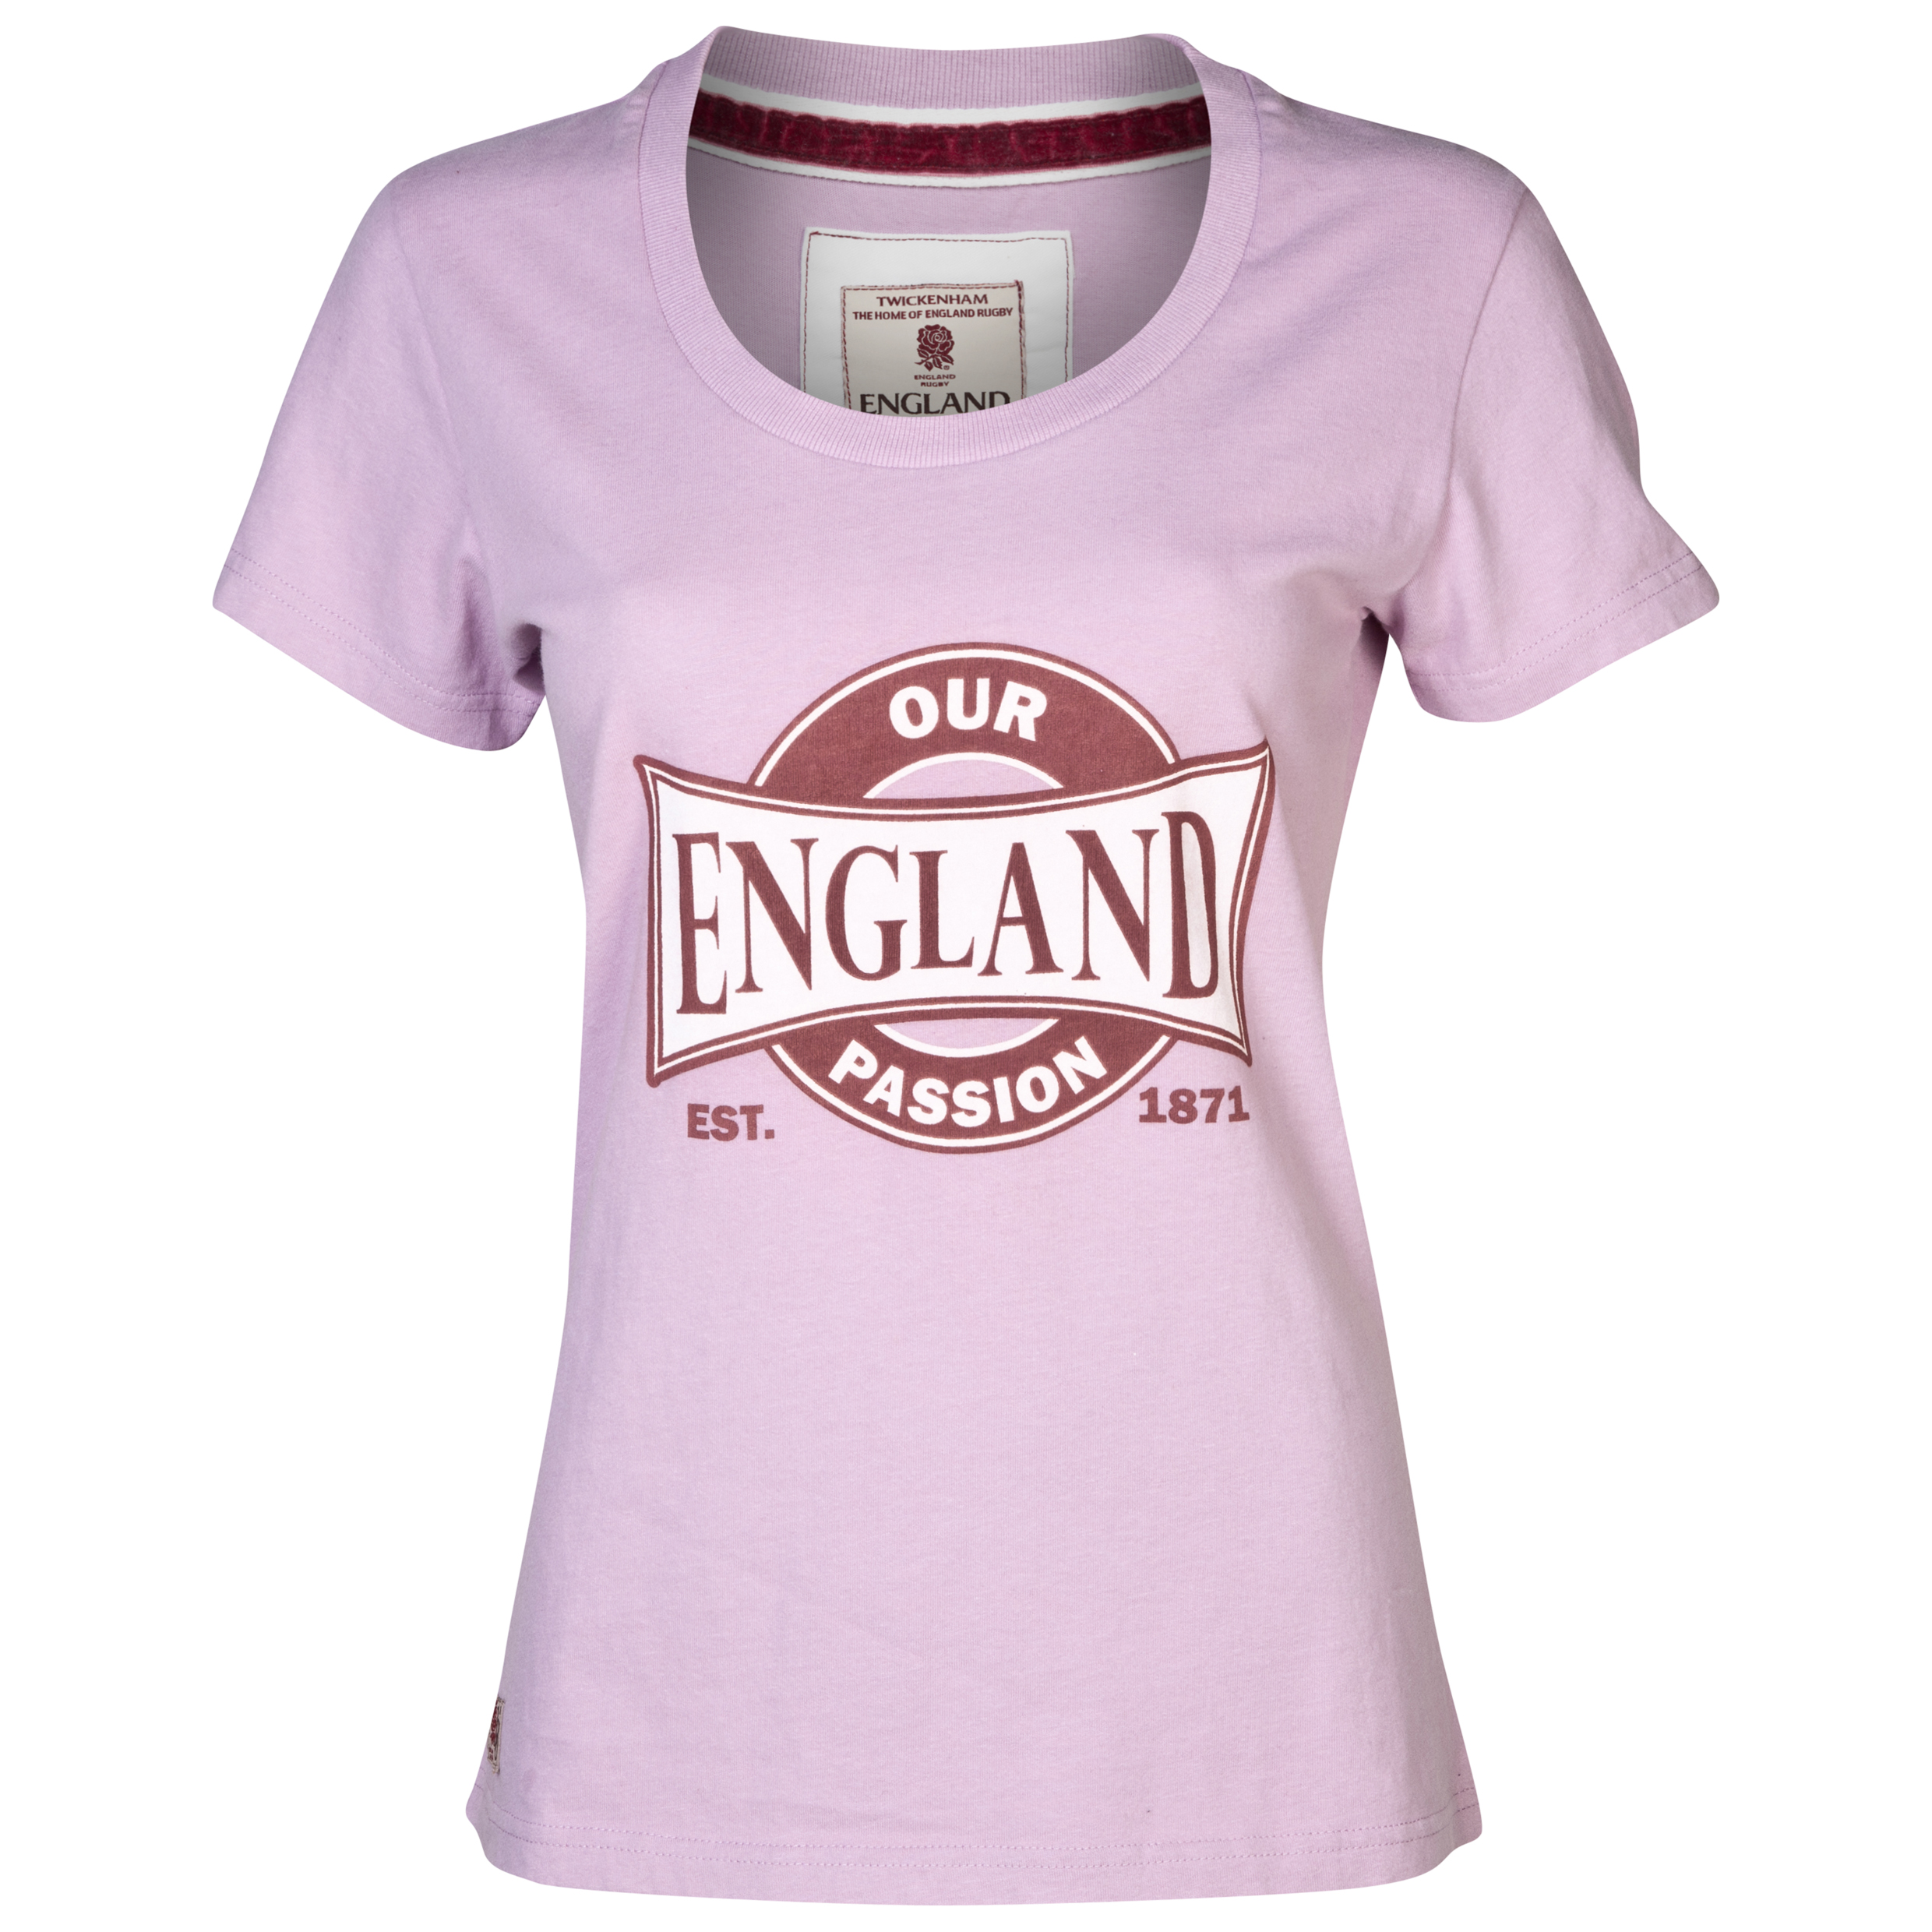 England Rugby Authentics Collection Our Passion T-Shirt - Womens Purple